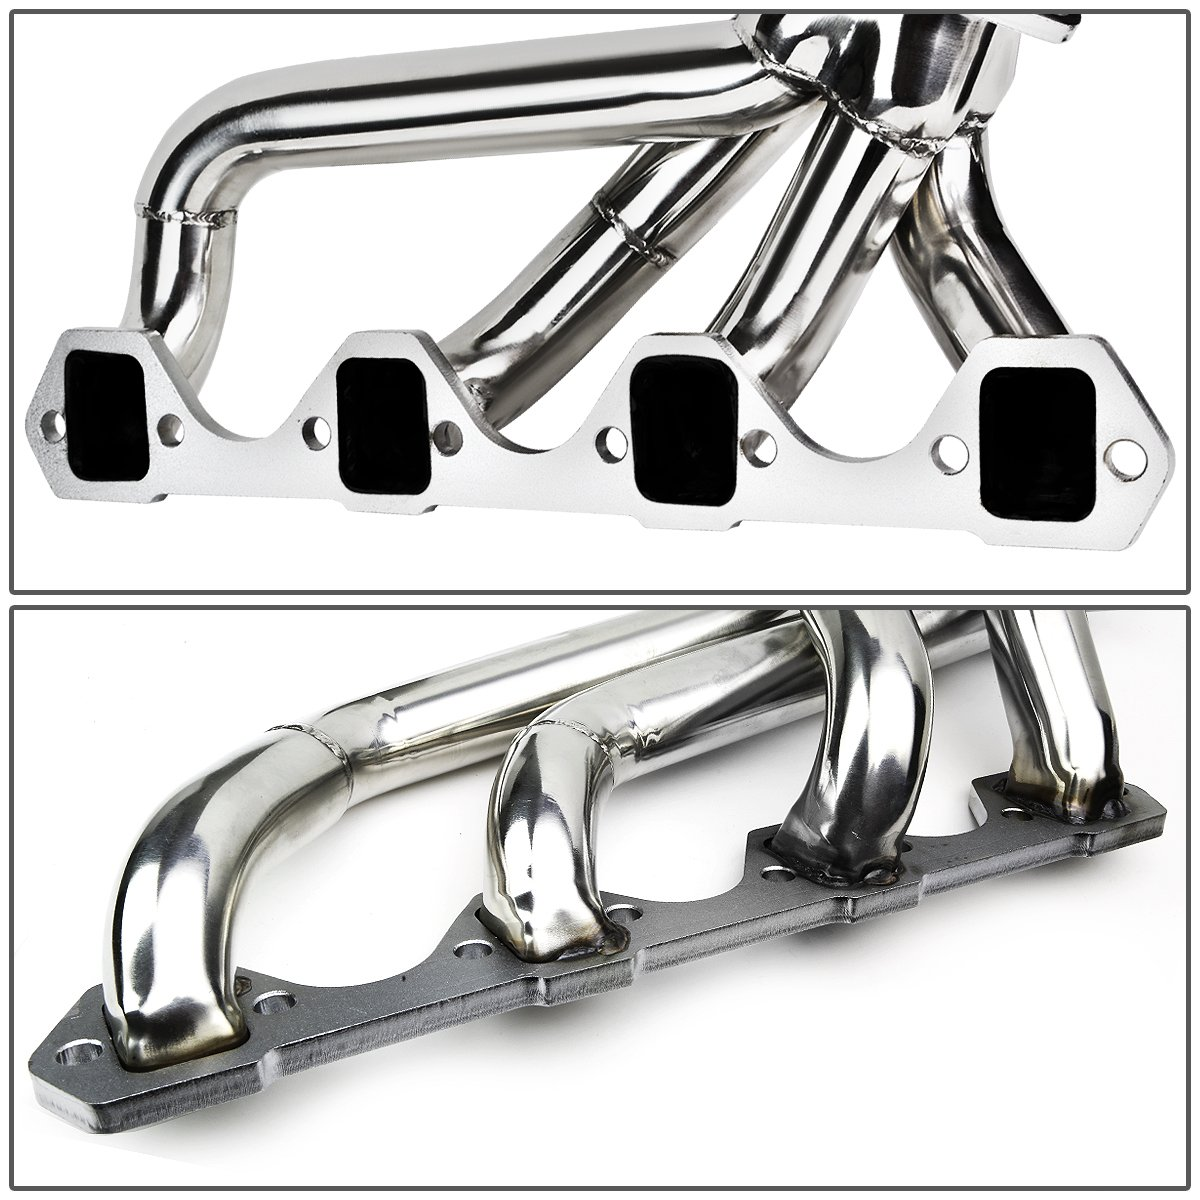 DNA Motoring HDS-FM64-SHORTY Stainless Steel Exhaust Header Manifold